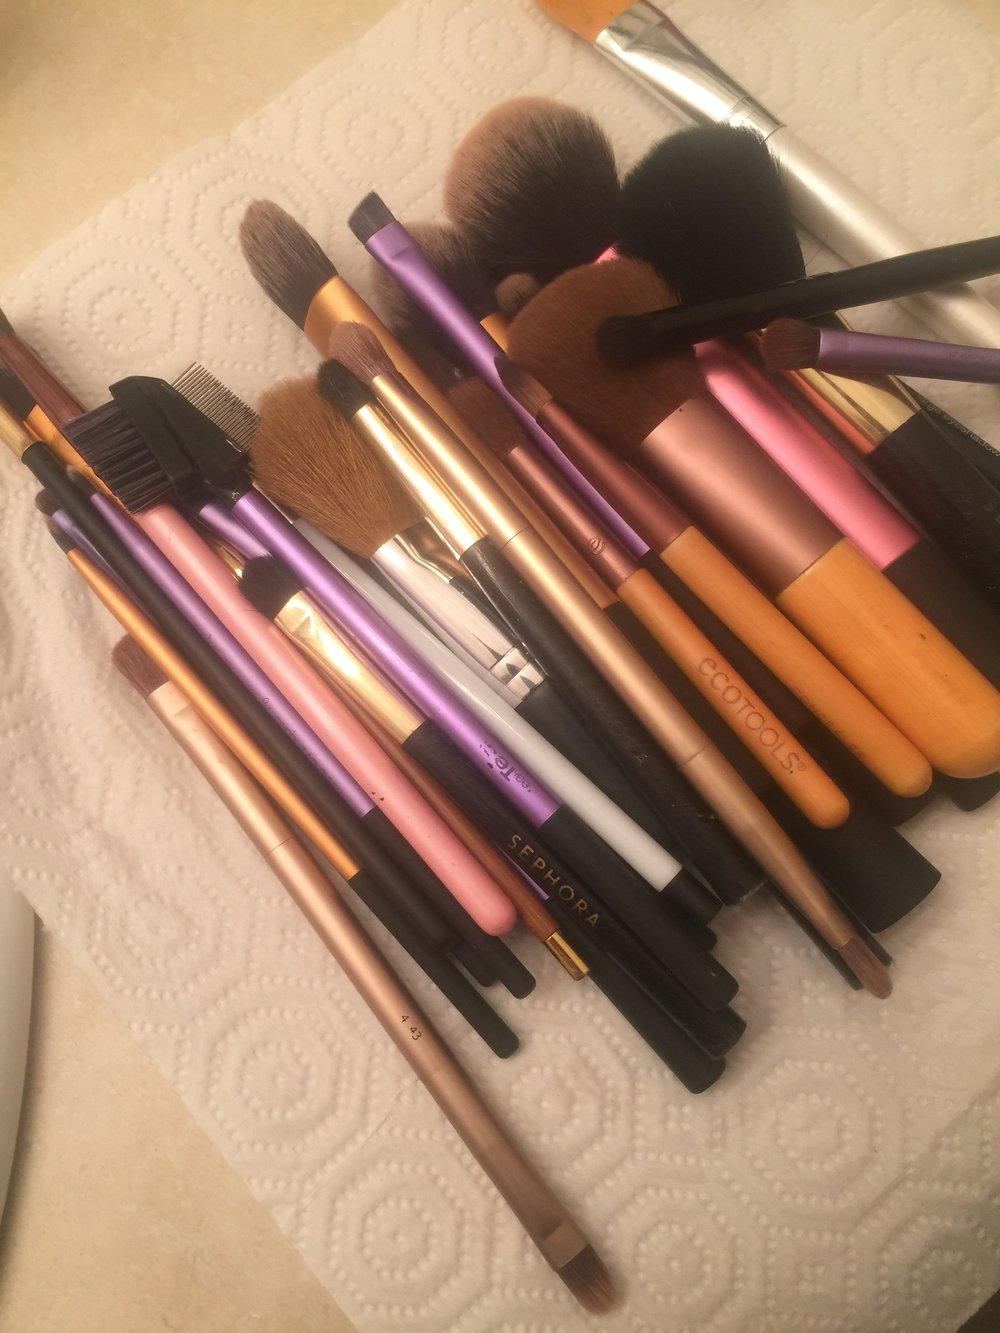 Pre cleaning brushes (I might have too many makeup brushes...)